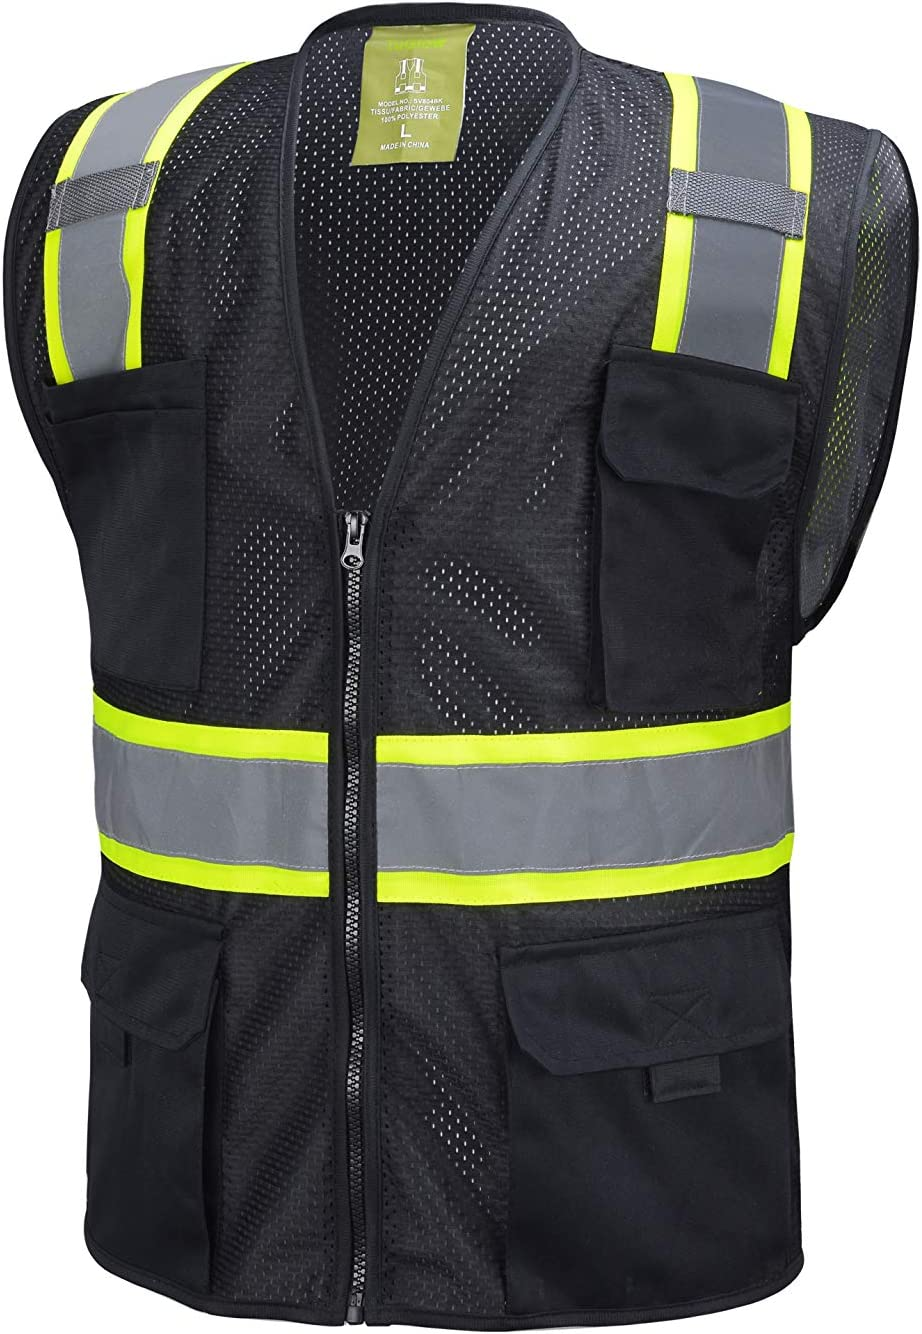 favorite Black Two Tones Safety Vest Small Tool Multi-Pockets Sale With